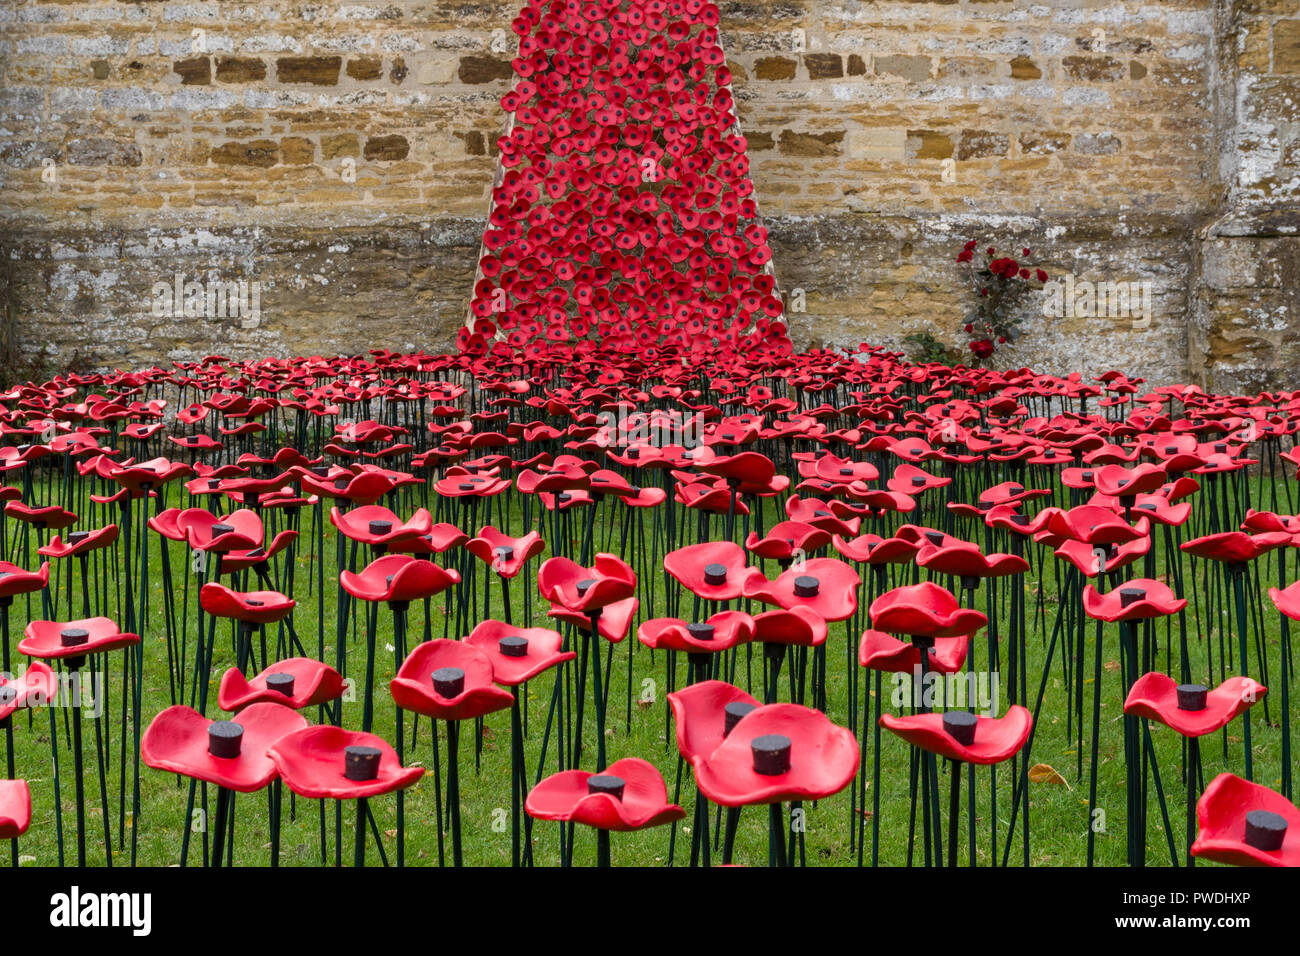 Weeping window display of handmade ceramic poppies for the centenary of WW1, the church of St Peter and St Paul's, Northampton, UK - Stock Image